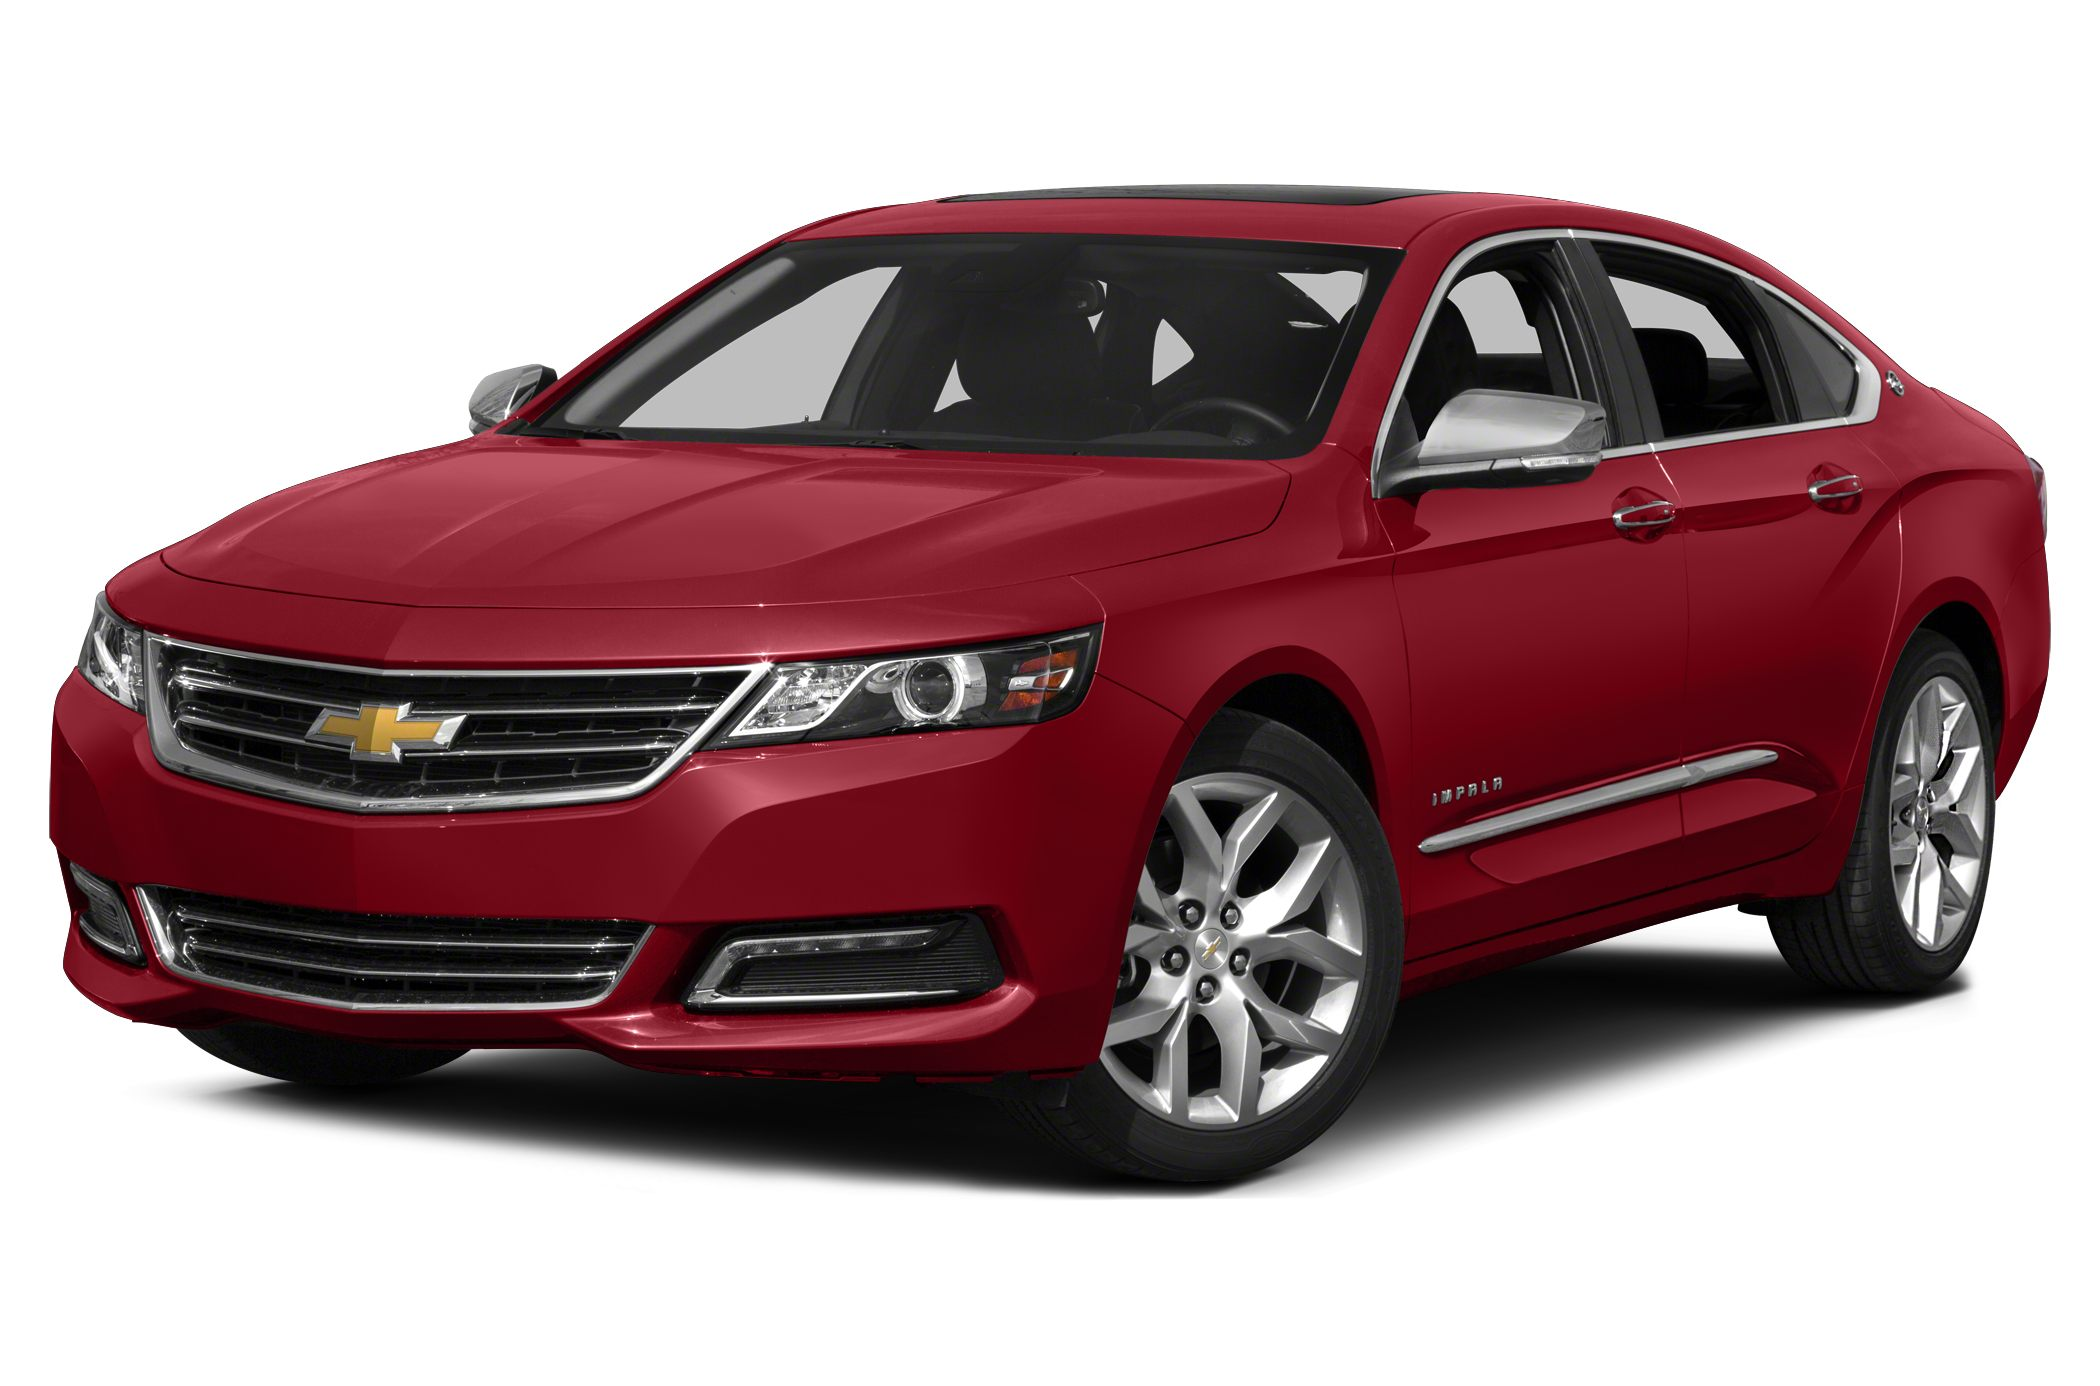 2014 Chevrolet Impala 2LT Sedan for sale in New Albany for $34,065 with 0 miles.